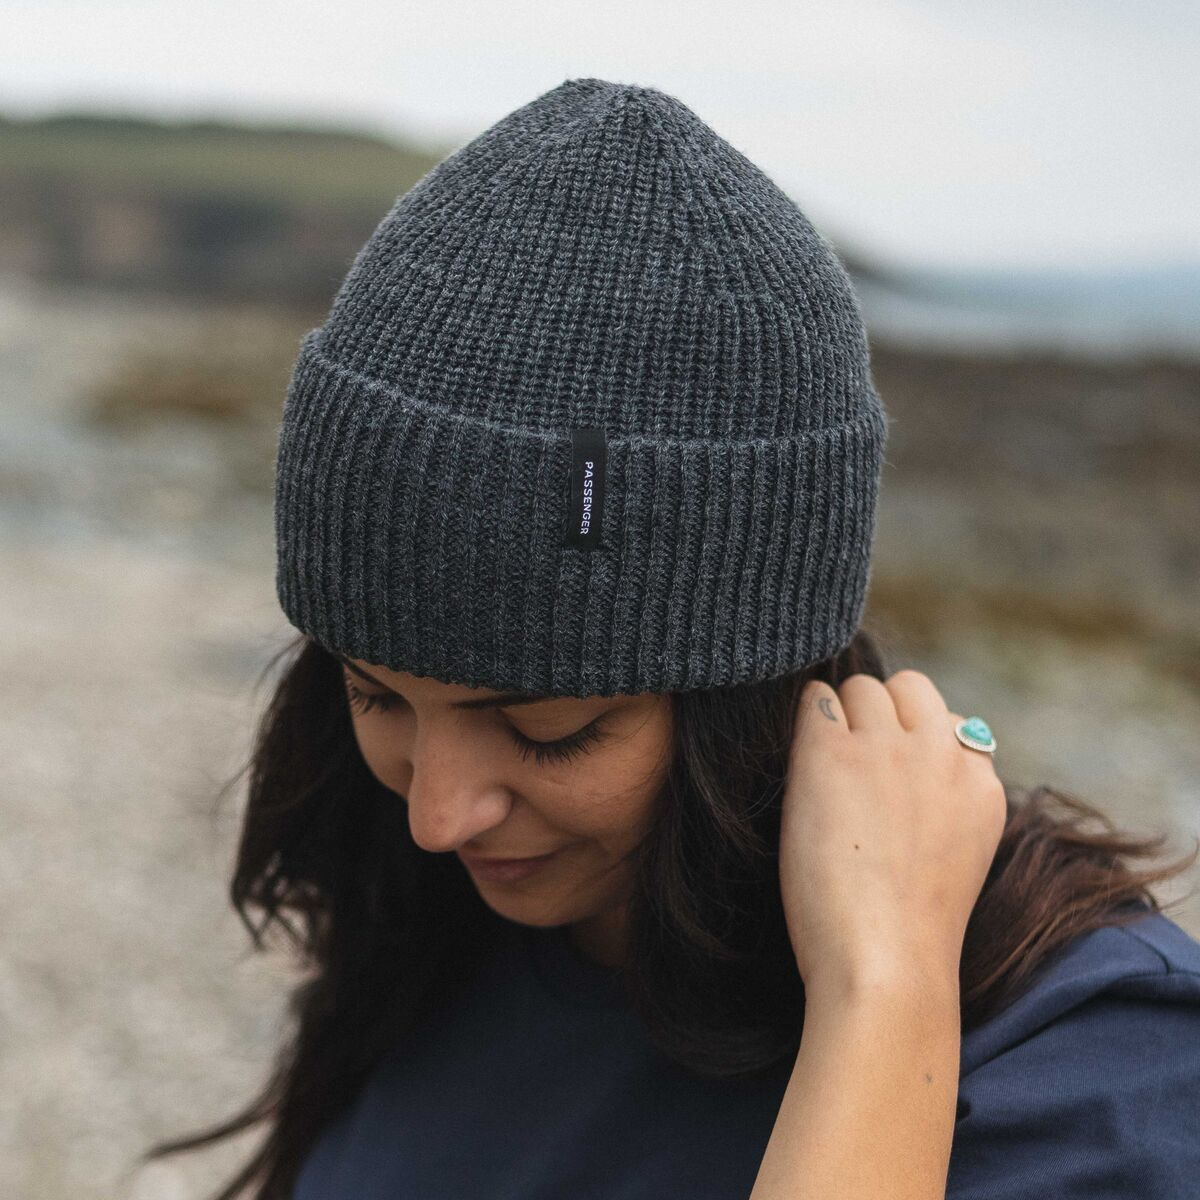 Compass Beanie - Charcoal image 8